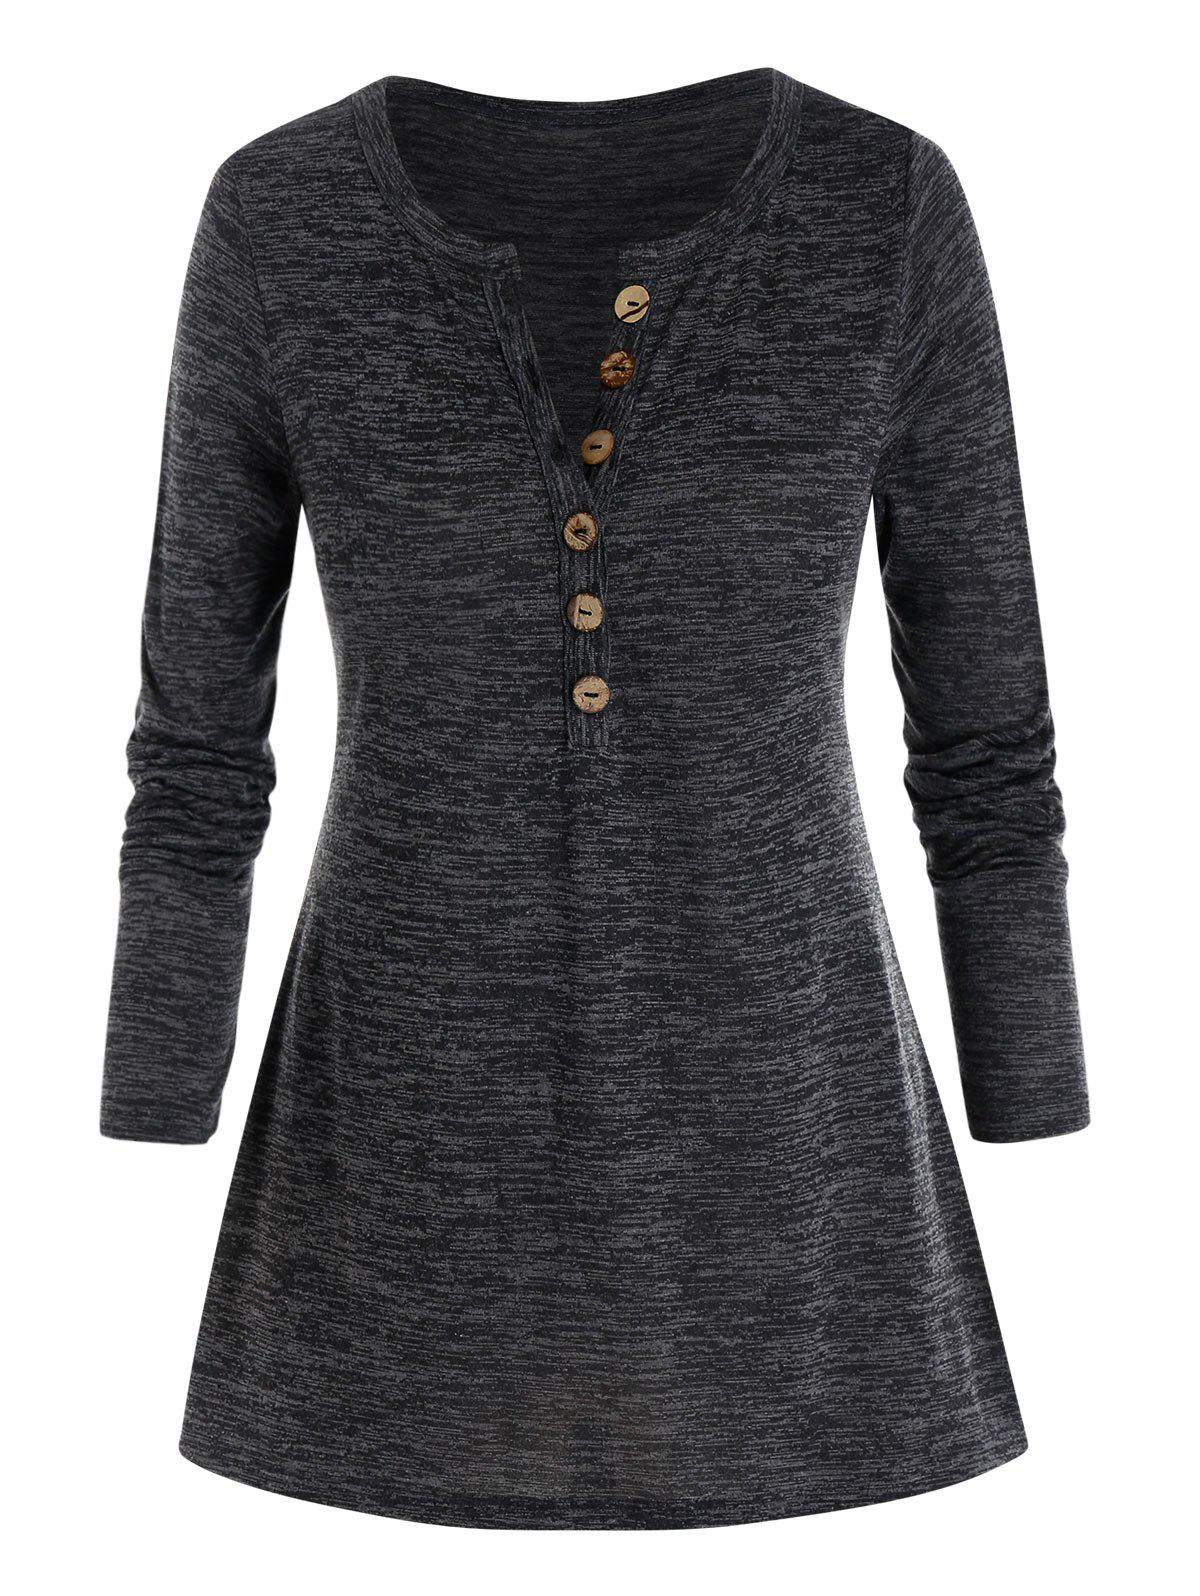 Plus Size Marled Buttoned Long Sleeve V Notch Tee - CARBON GRAY 2X